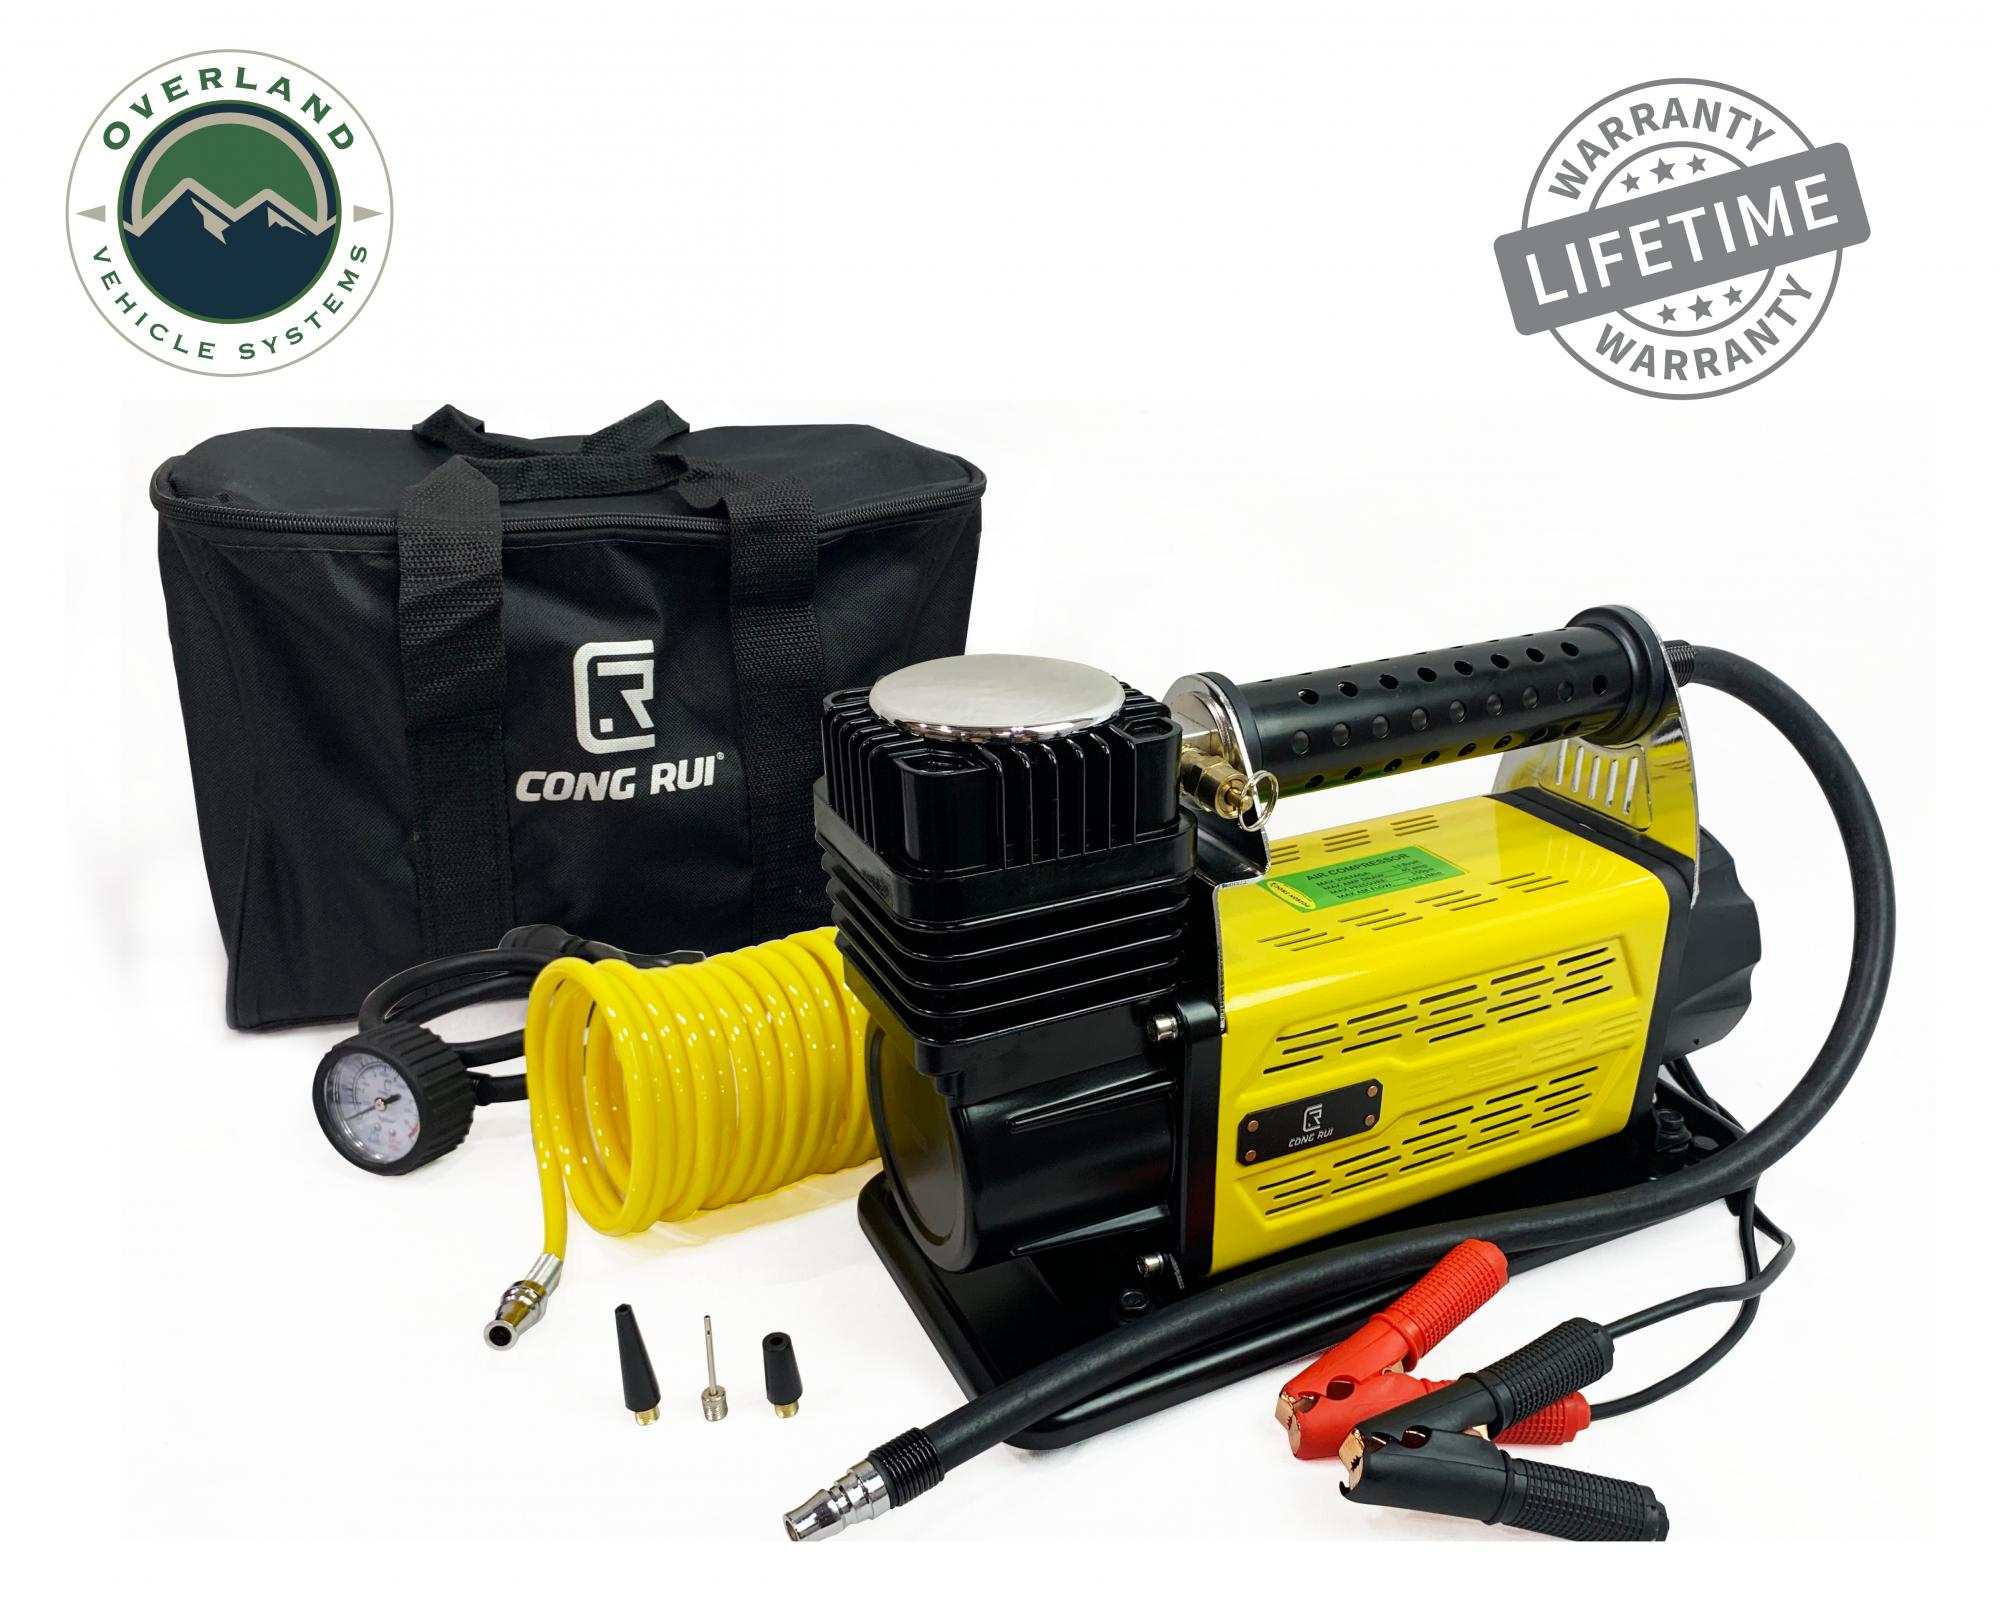 Up Down Air 5.6 CFM Air Compressor System w/ Storage Bag, Hose and Attachments - Single Motor